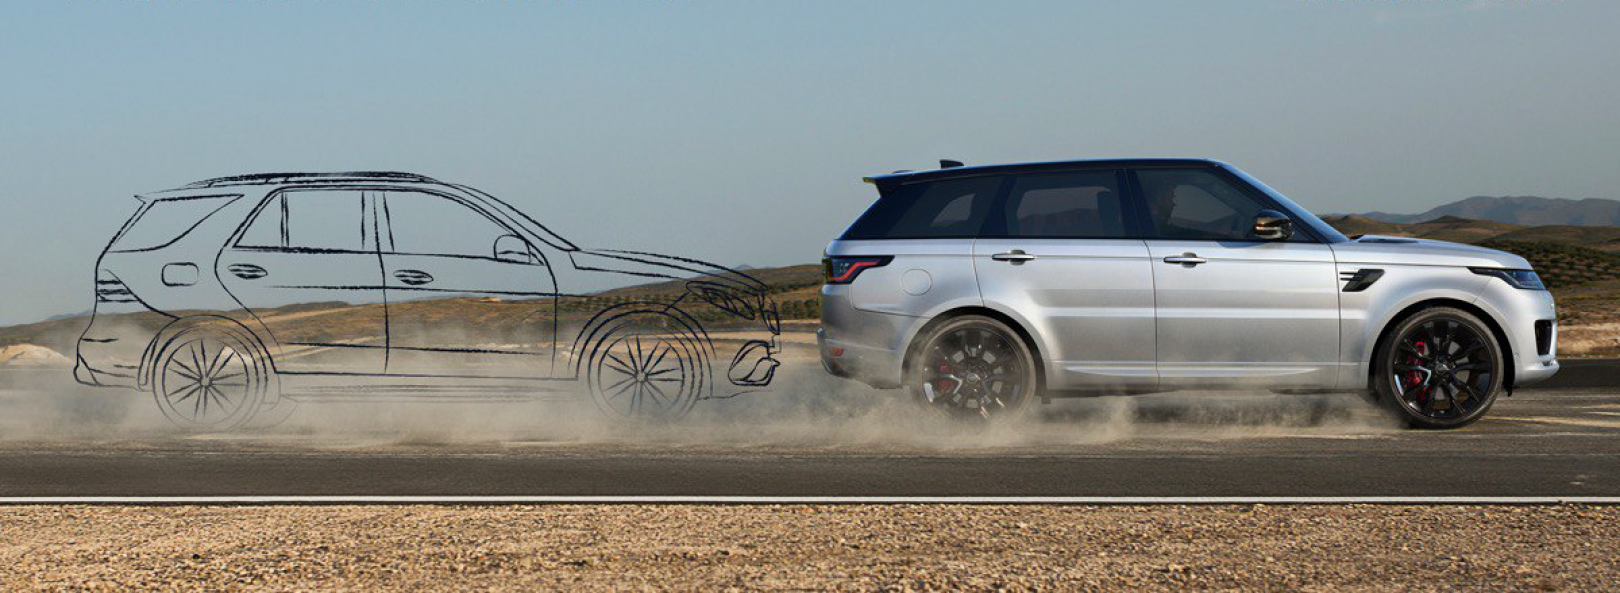 Land Rover Trade-in